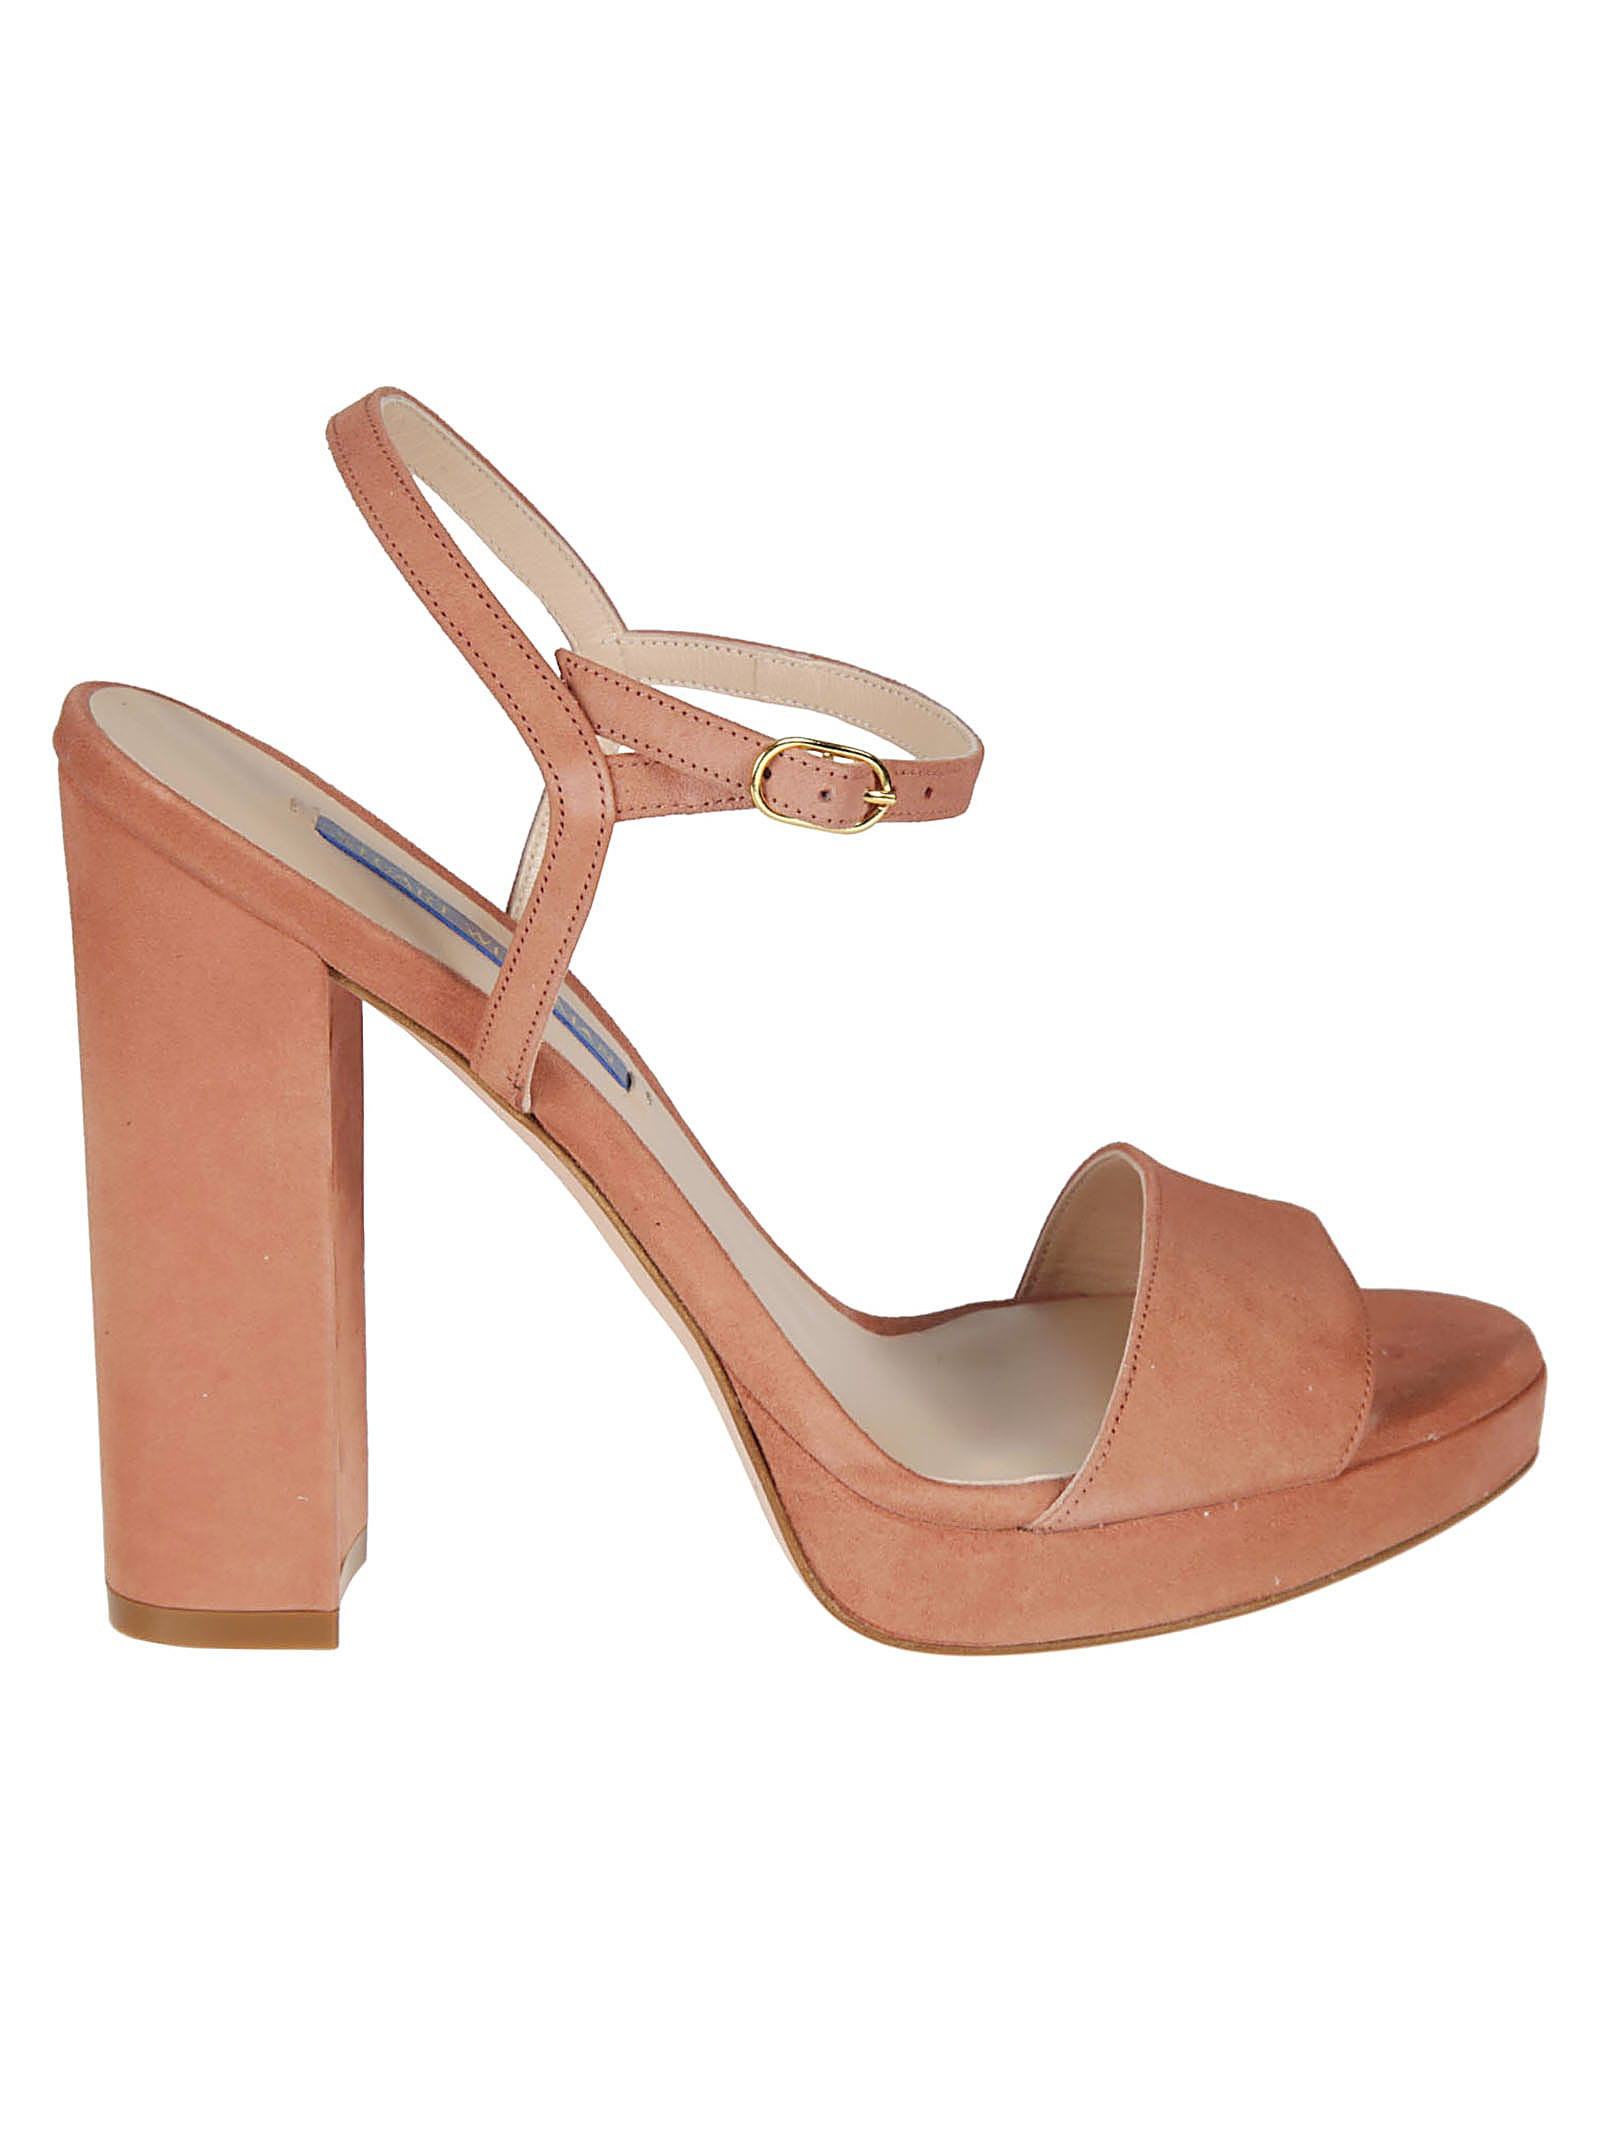 Stuart Weitzman Buckled Sandals